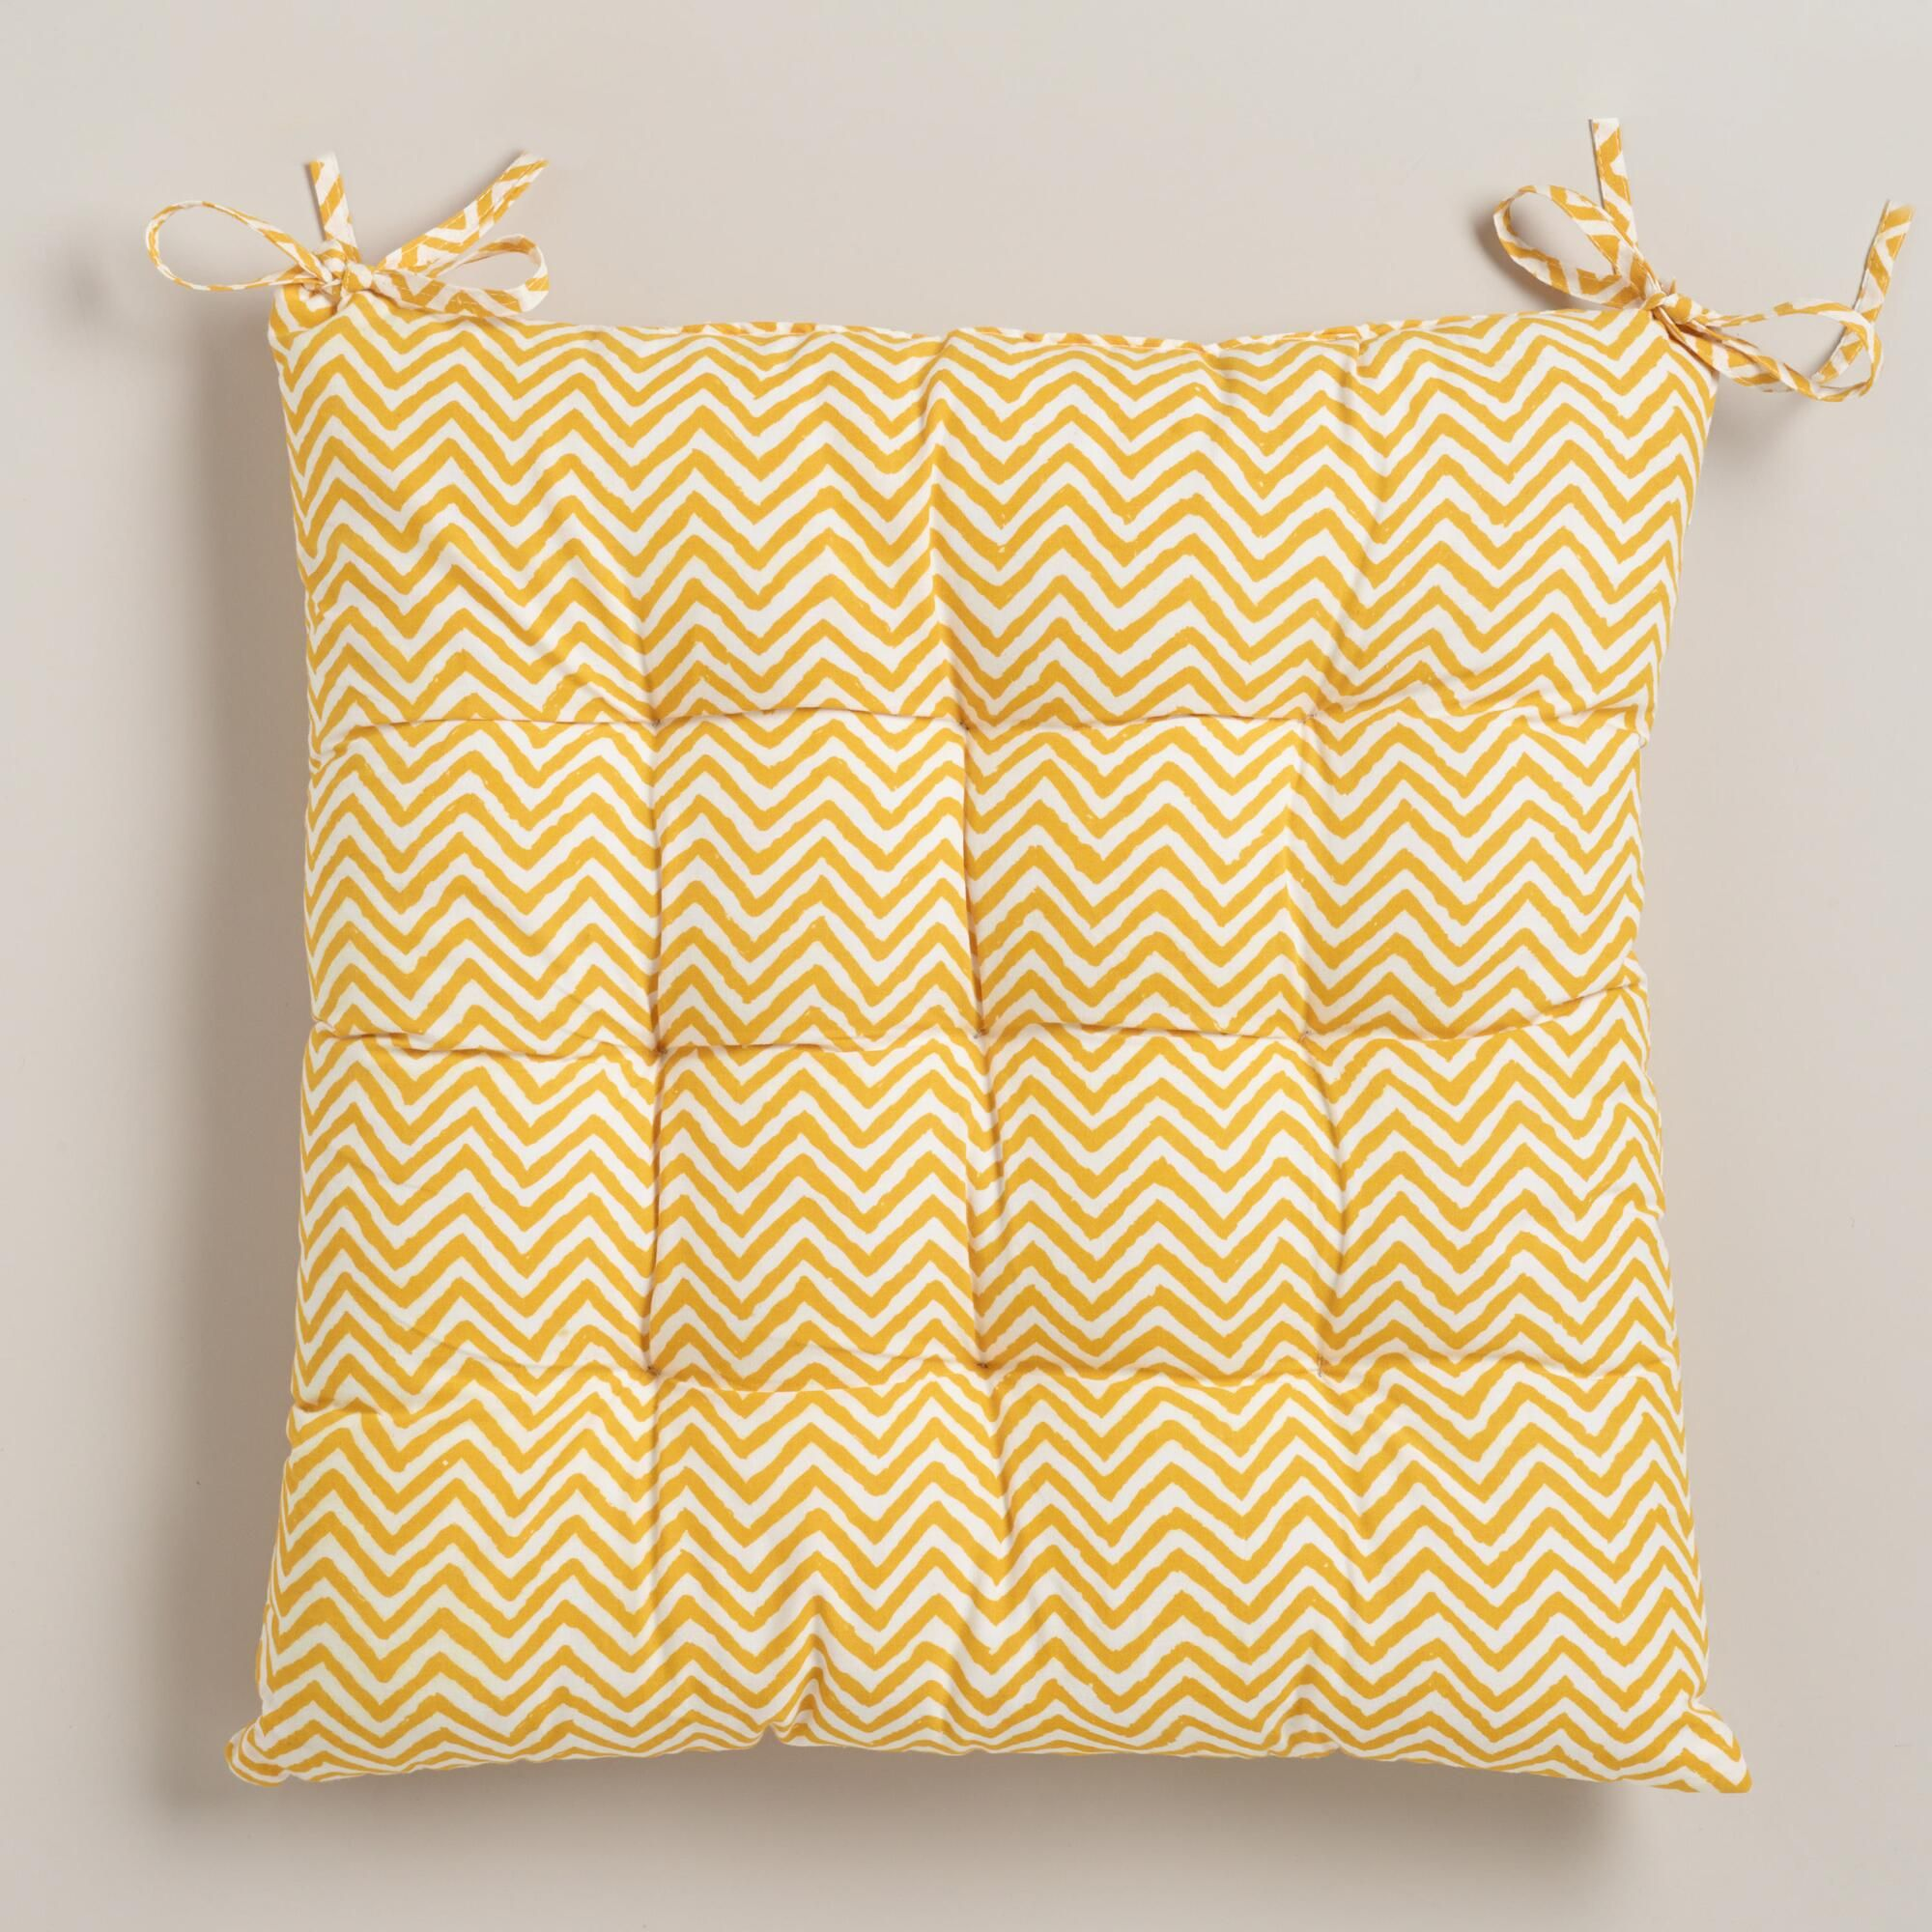 Our Rustic Yellow Chevron Chair Cushion